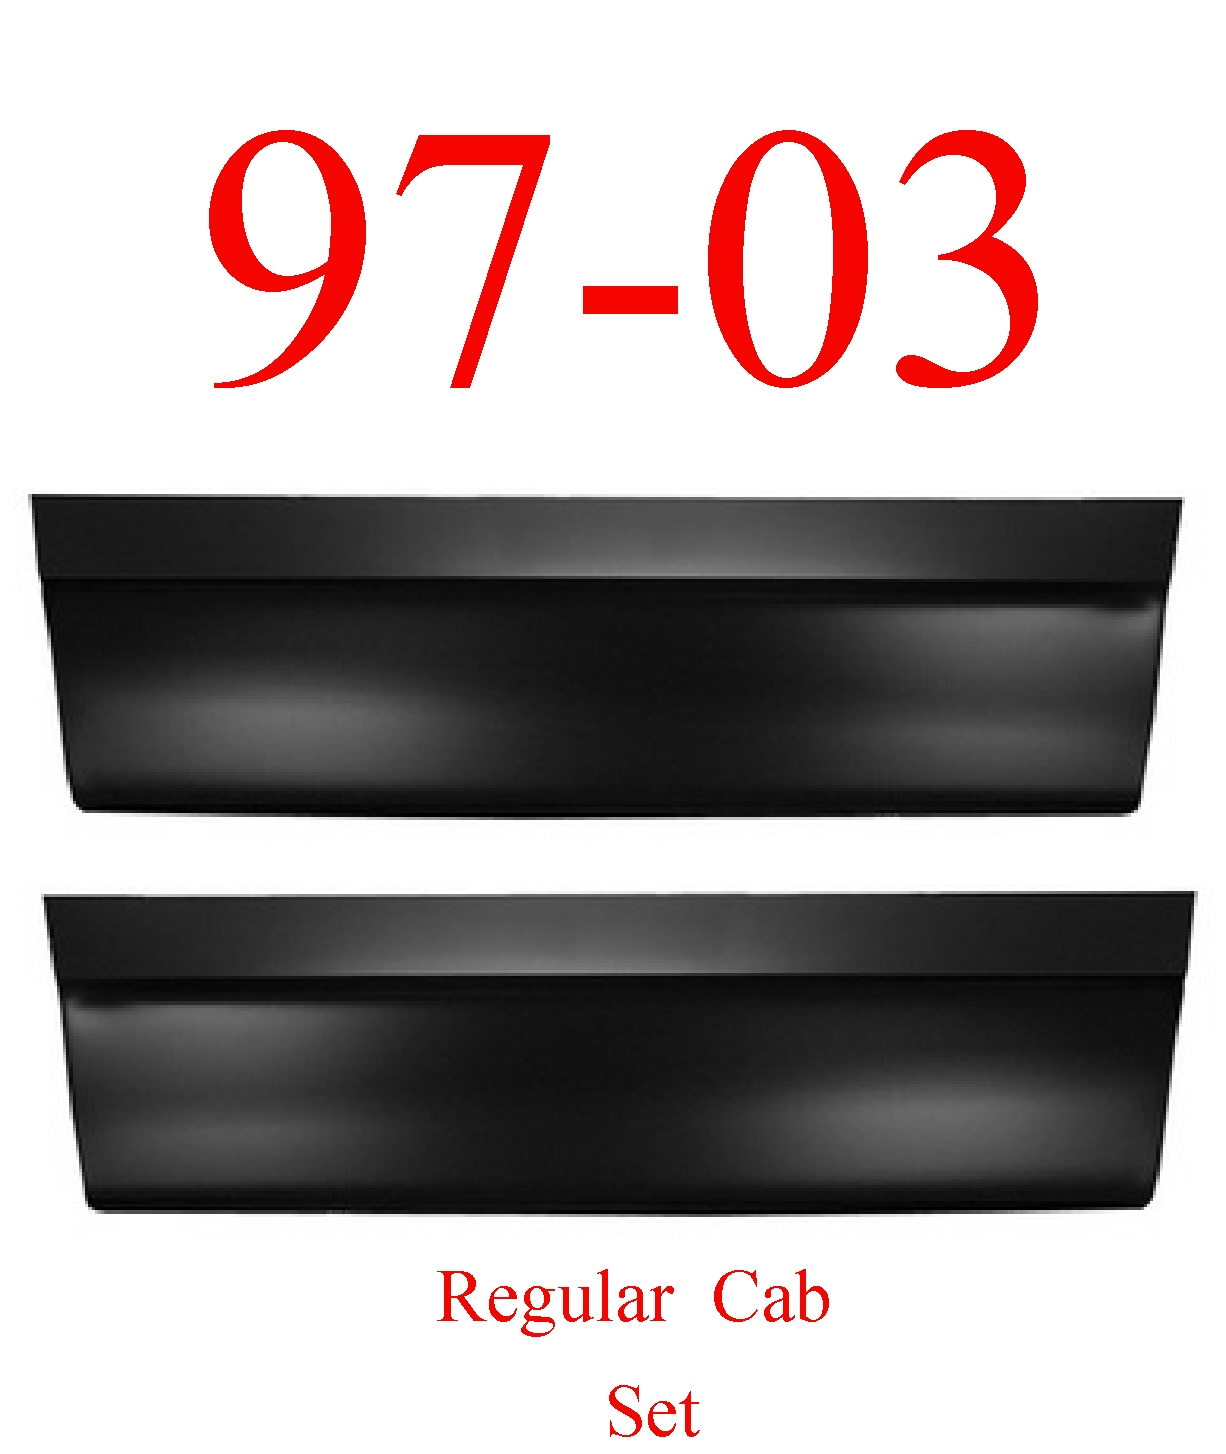 97-03 F150 Regular Cab Outer Door Bottom Skin Set